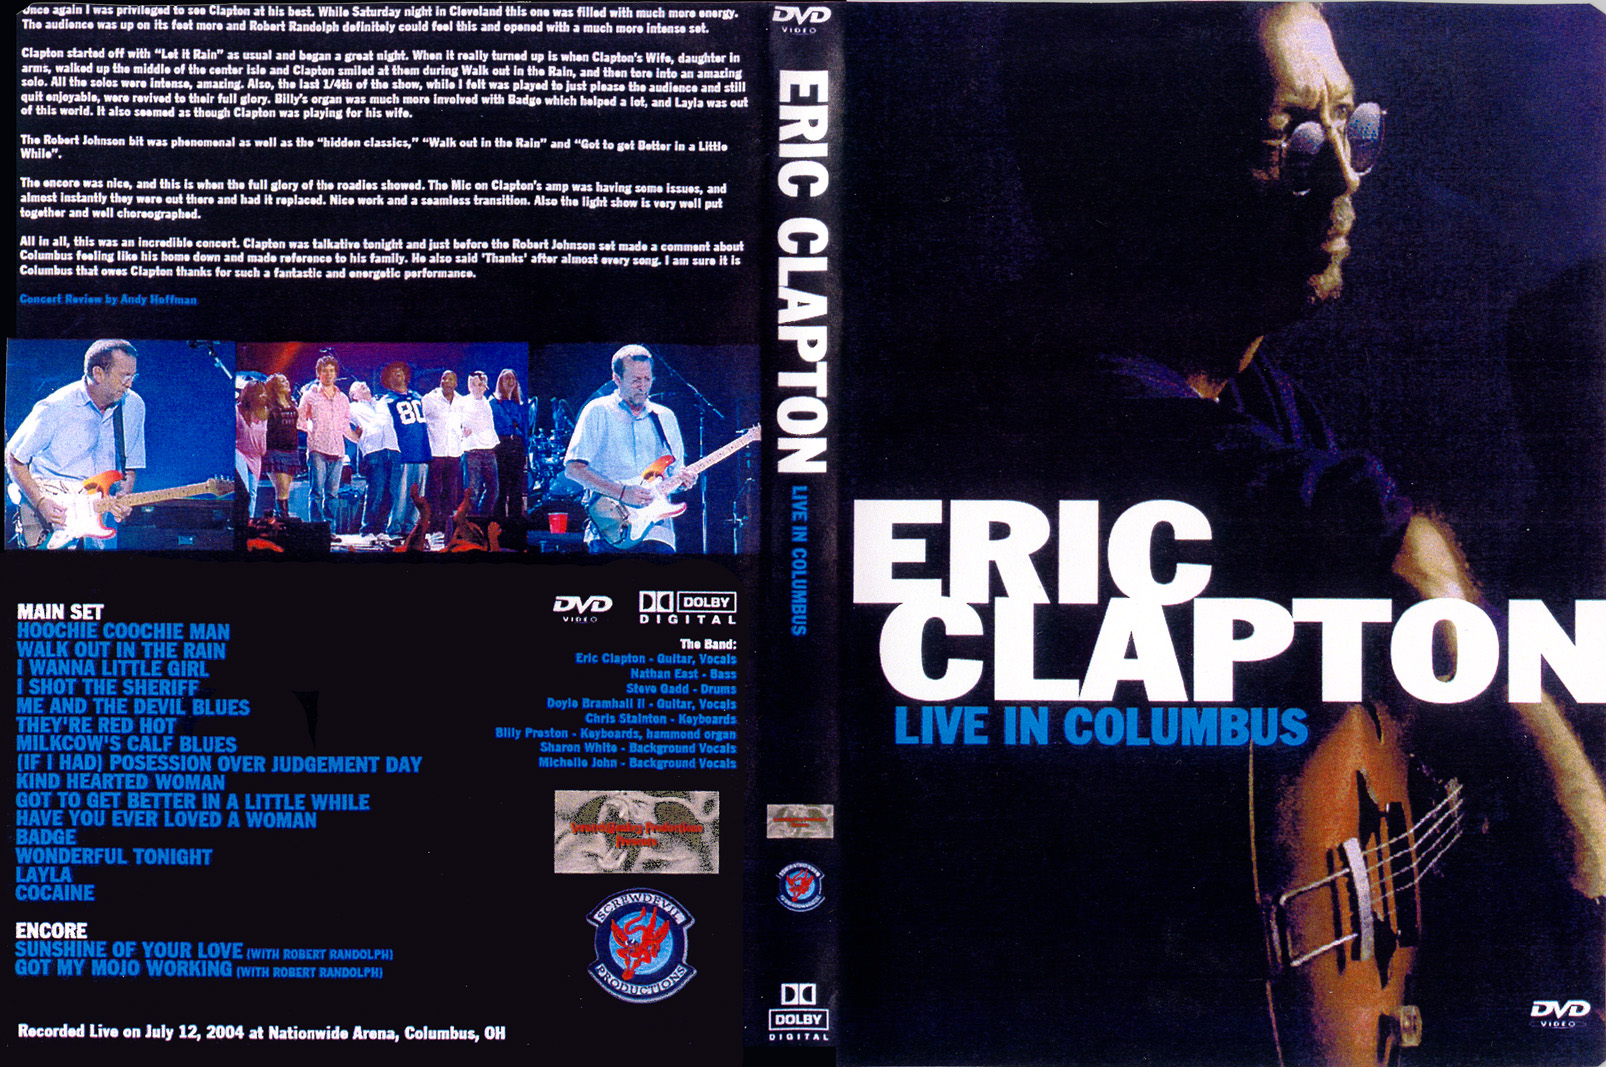 Eric Clapton Home Columbus Ohio http://www.geetarz.org/reviews/clapton/2004-07-12-columbus-dvd.htm